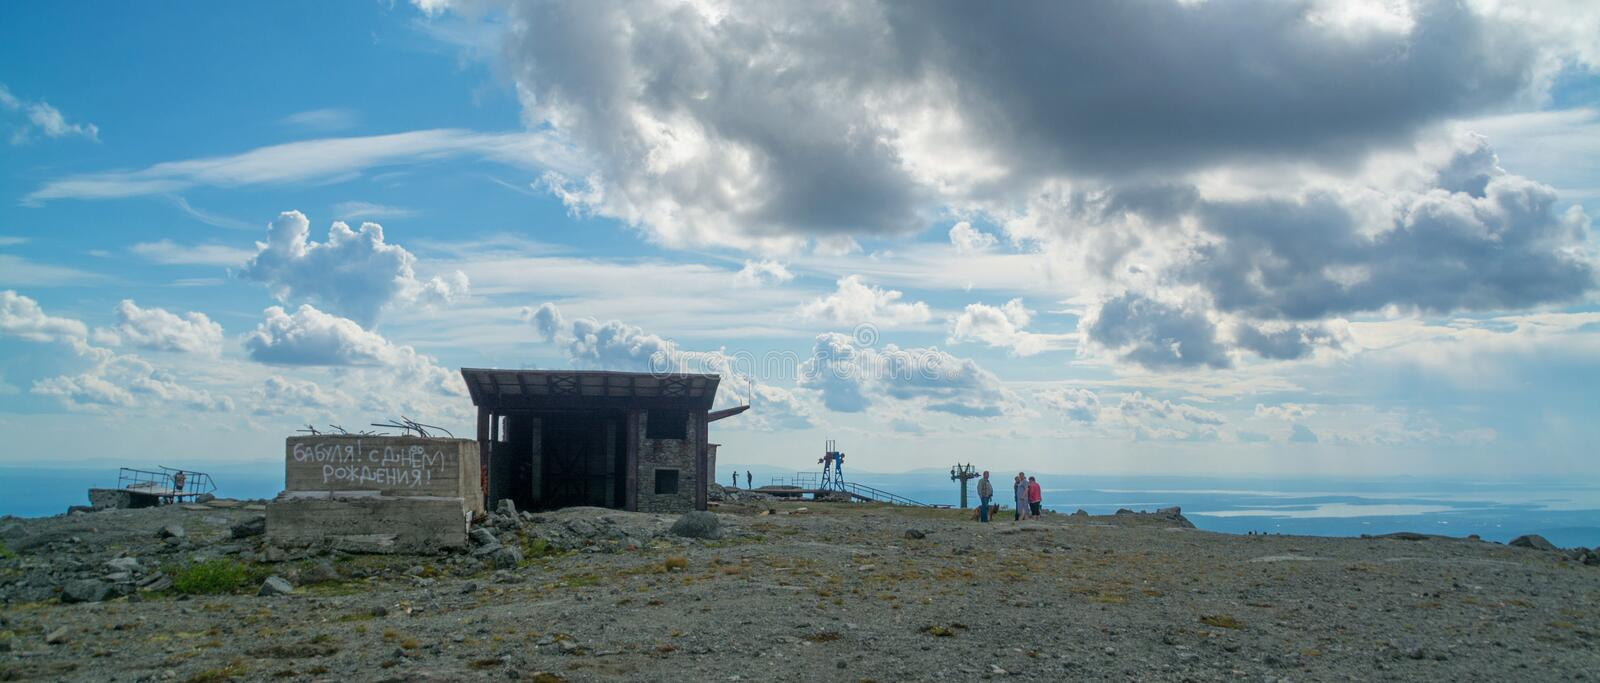 People walk along the top of the mountain Aikuivenchorr. The ski resort Bolshoy Vudyavr in Kirovsk, Russia, in the summer turns into a place for recreational stock image